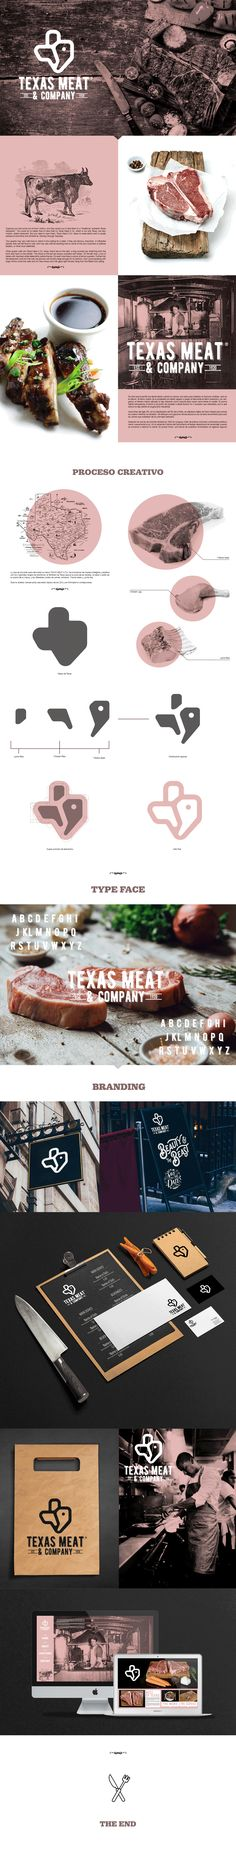 TEXAS MEAT & COMPANY on Behance